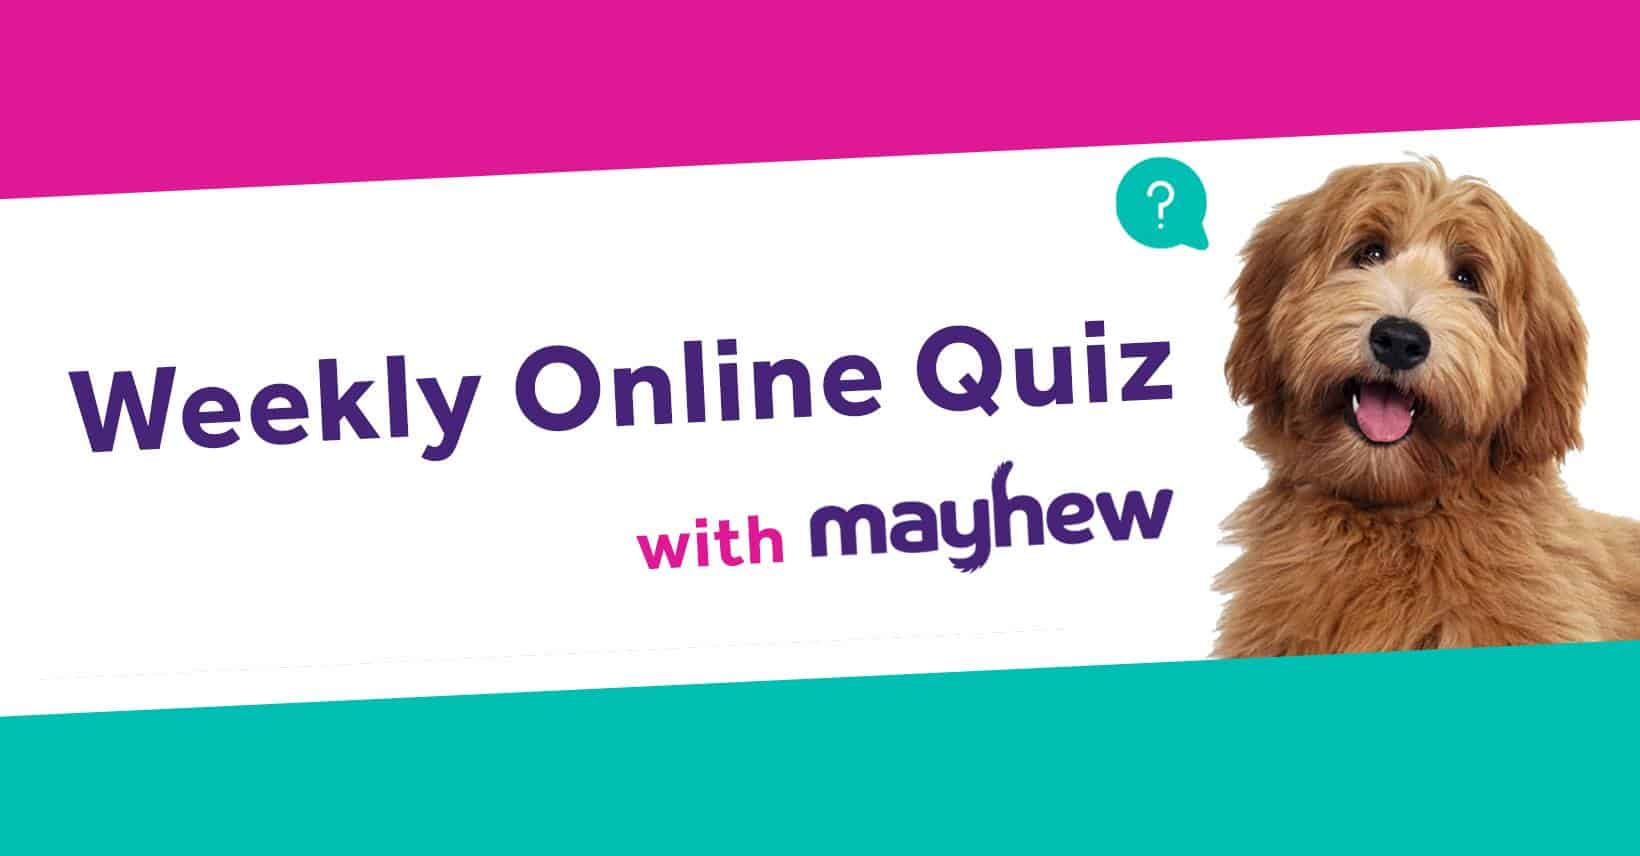 Mayhew Weekly Online Quiz